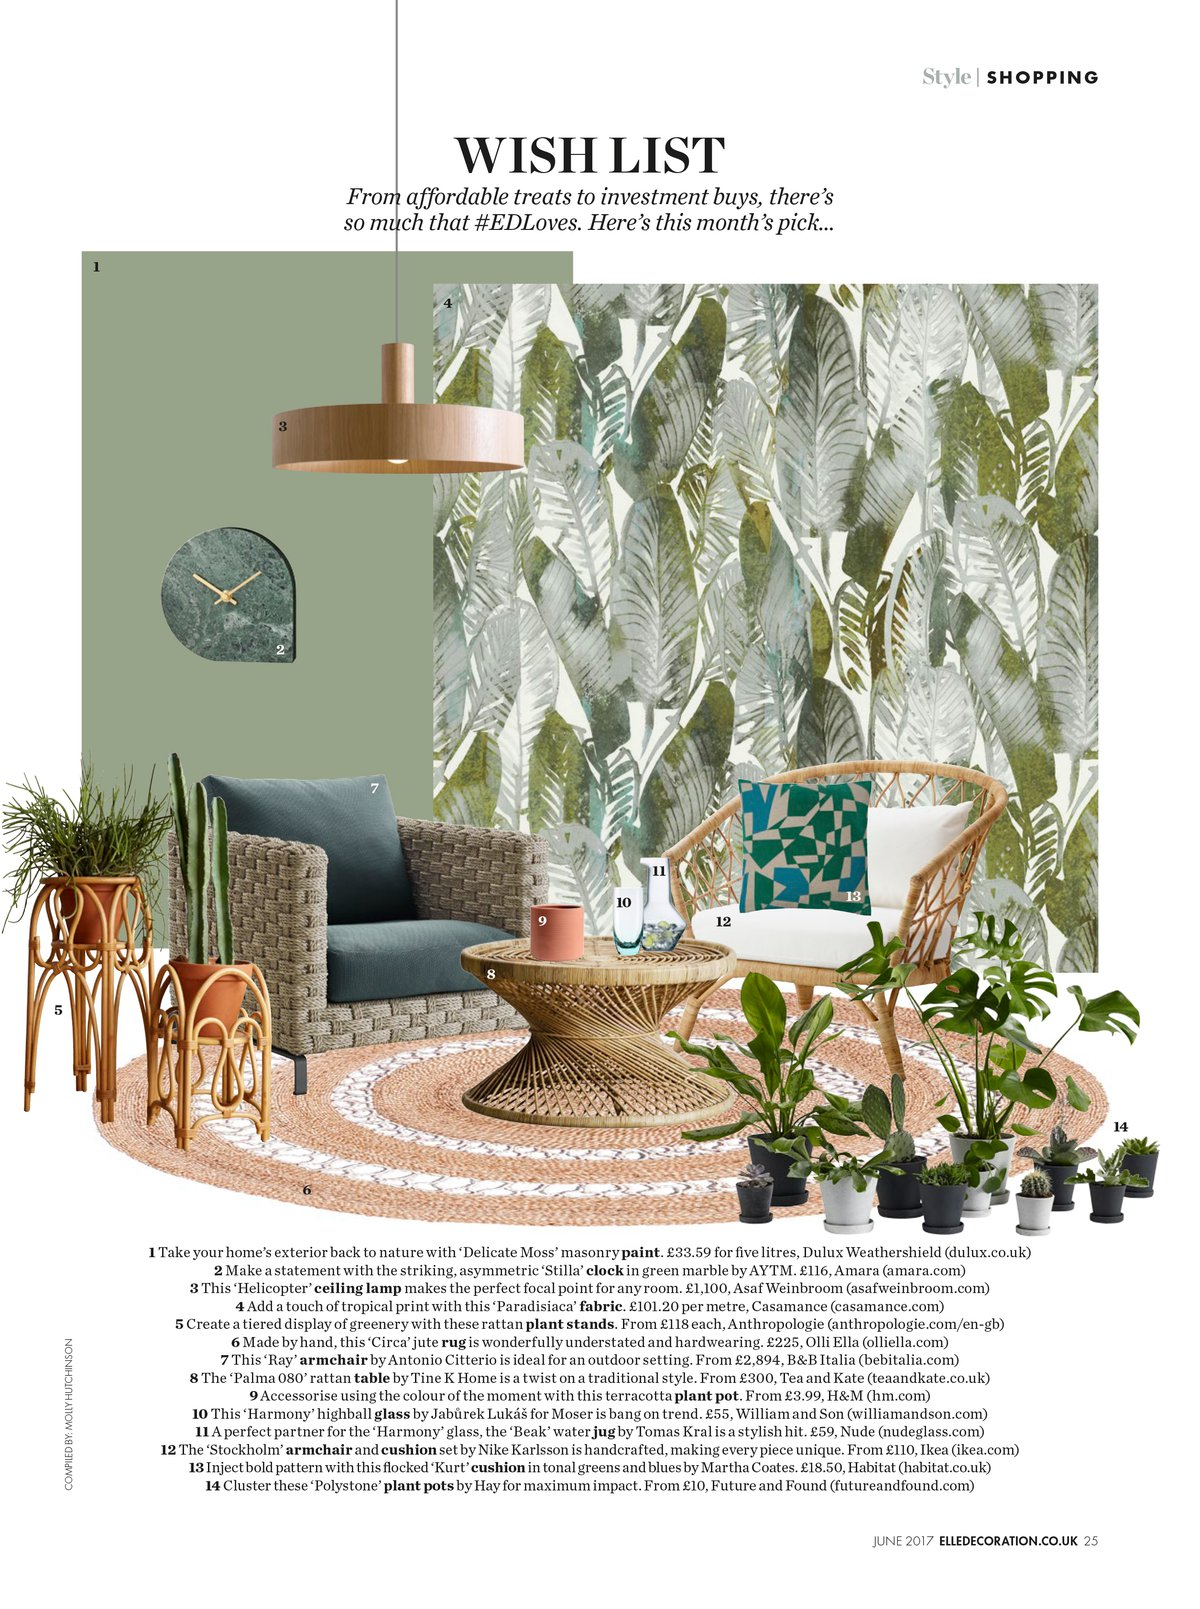 Elle Decoration Dk Press 2018 Tine K Home